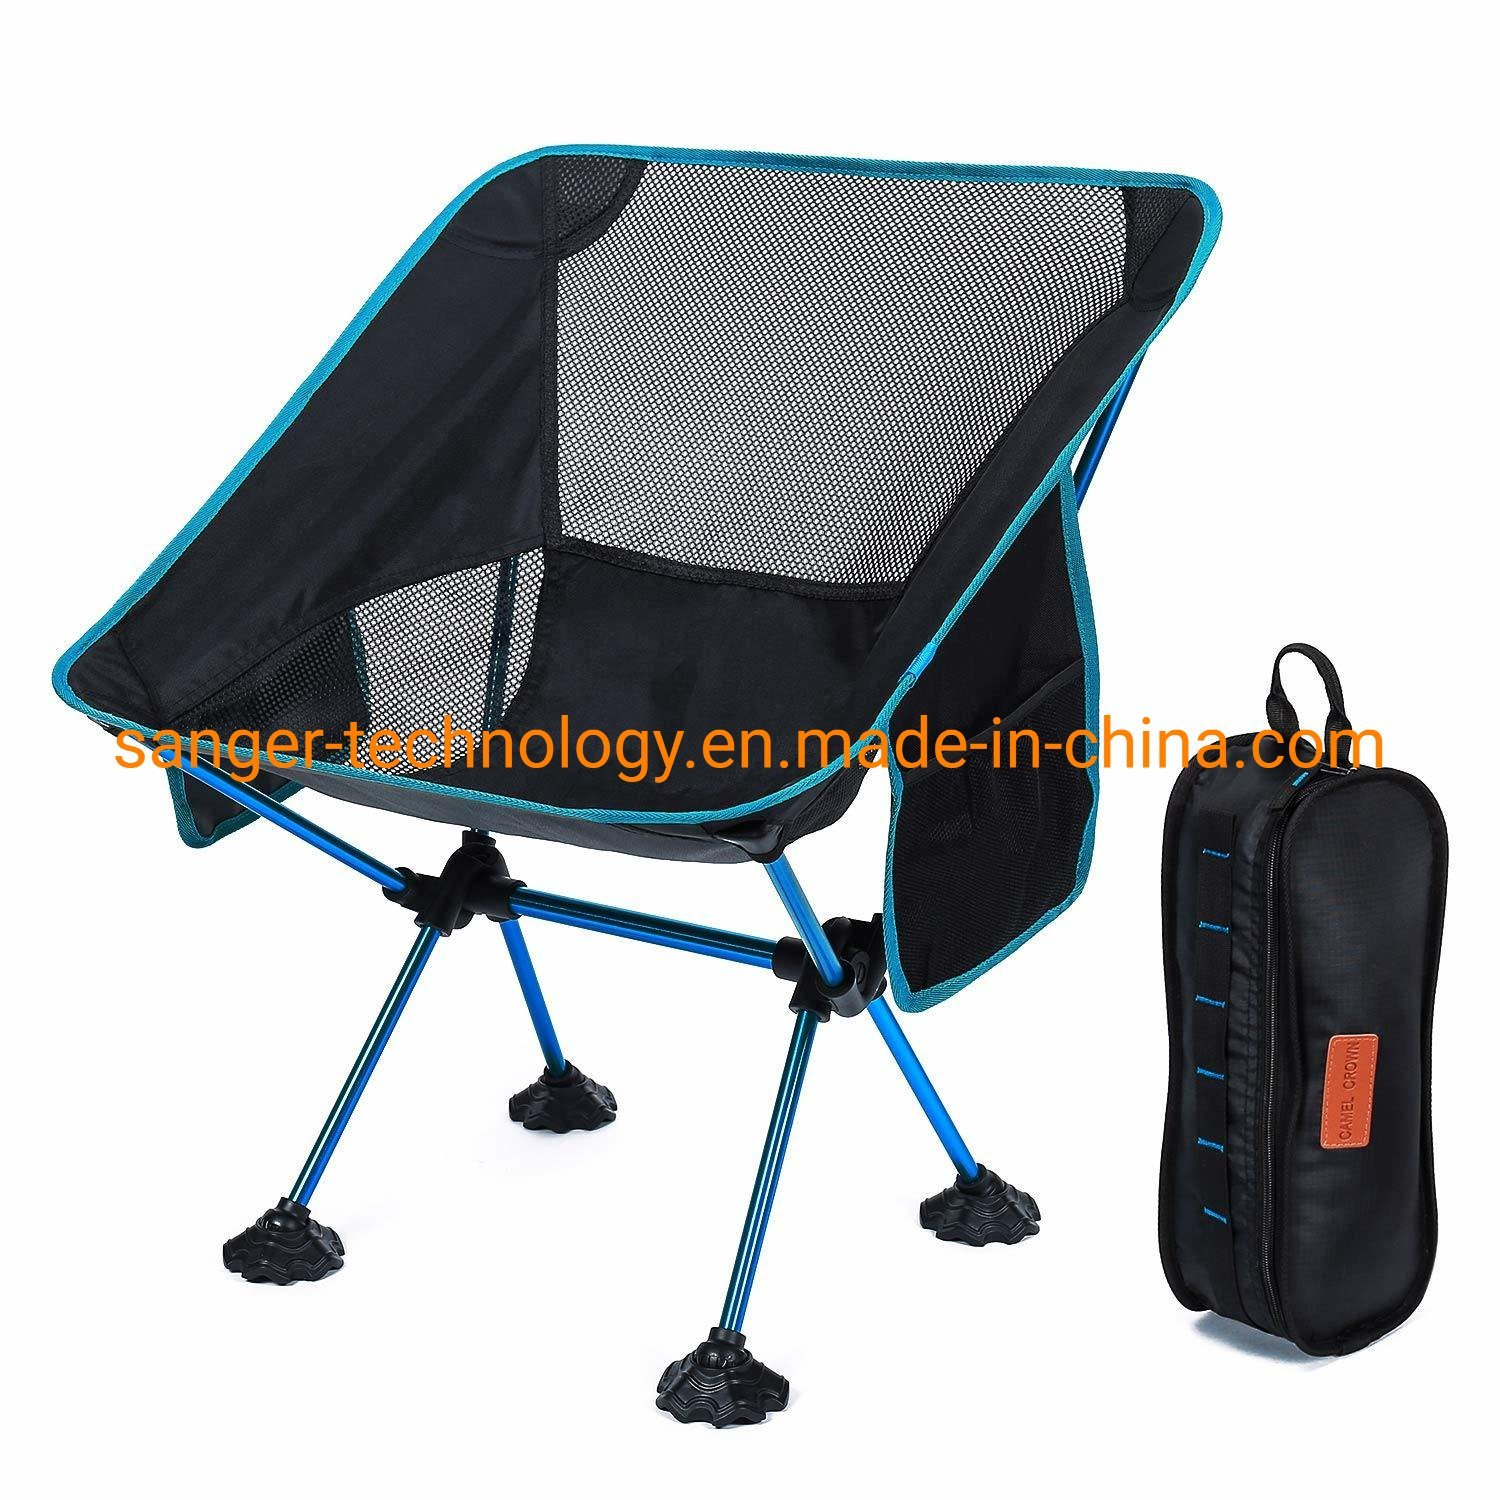 Folding Camping Chair Outdoor Hiking Ultra-light Portable Foldable Chairs HOT